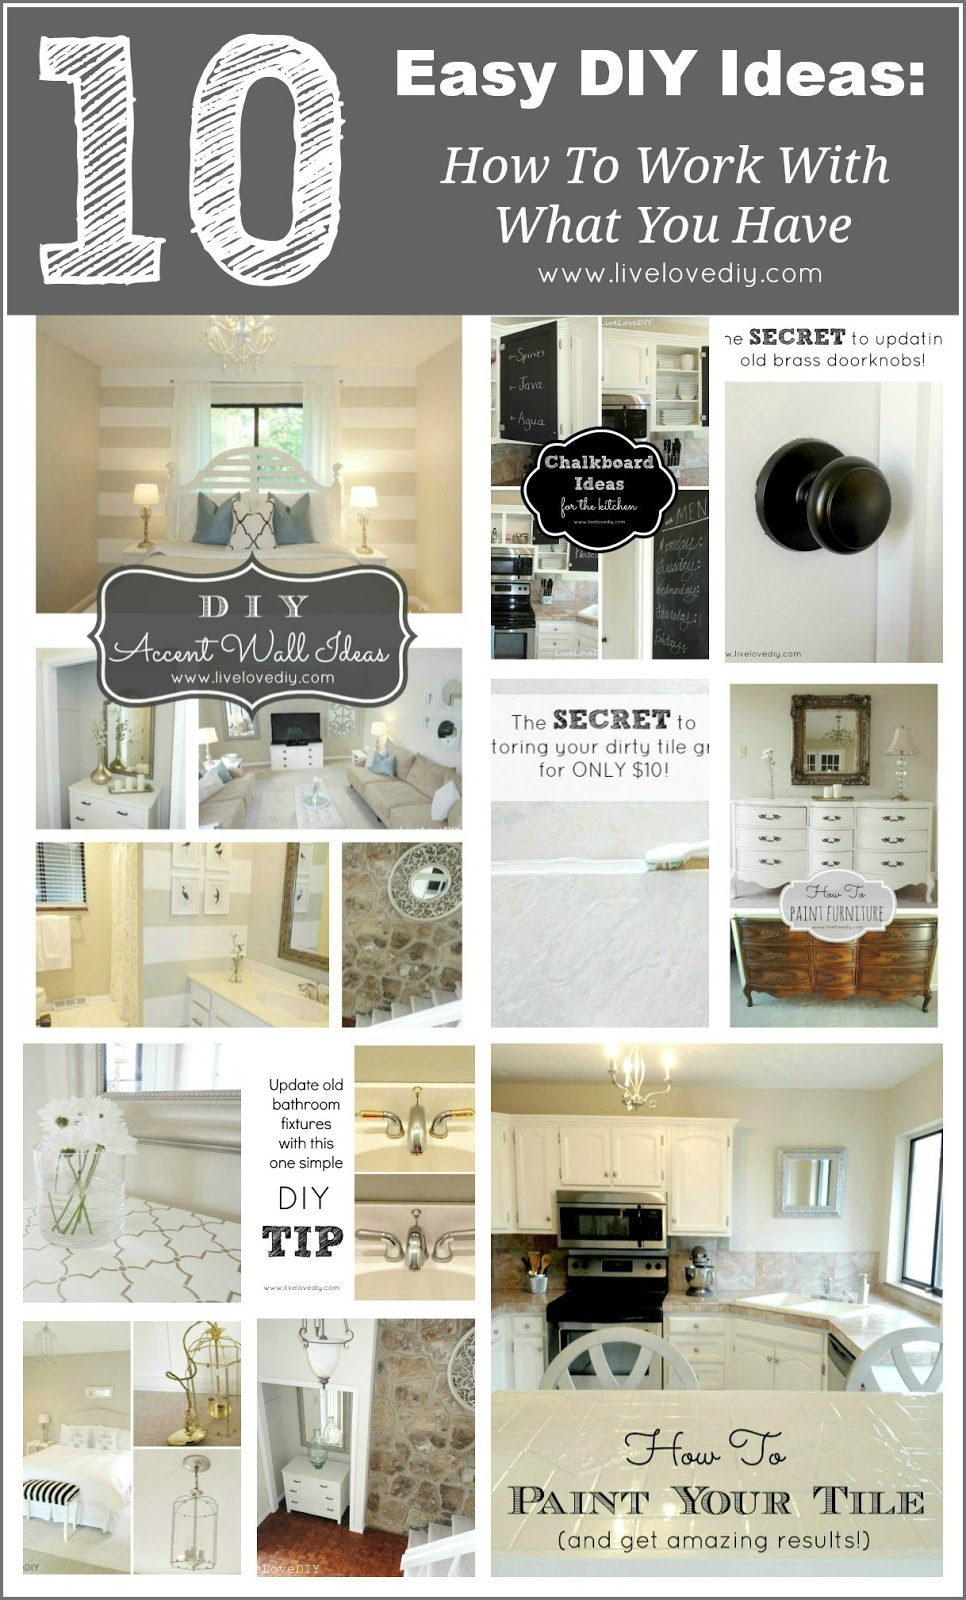 LiveLoveDIY: 10 Home Improvement Ideas: How To Make The ...